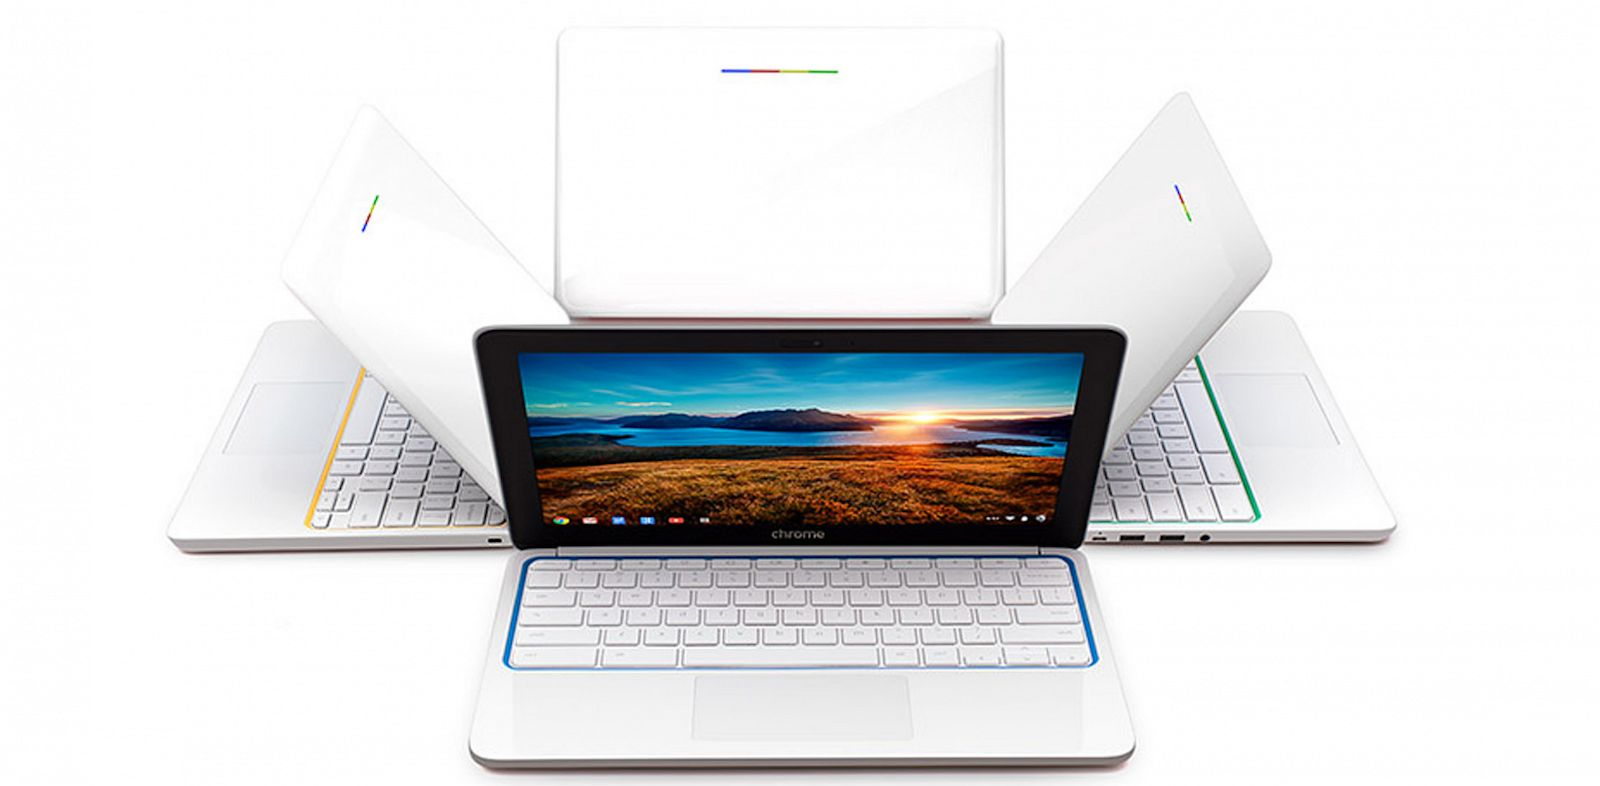 PHOTO: Google and HP have teamed up to release the $279 Chromebook 11.